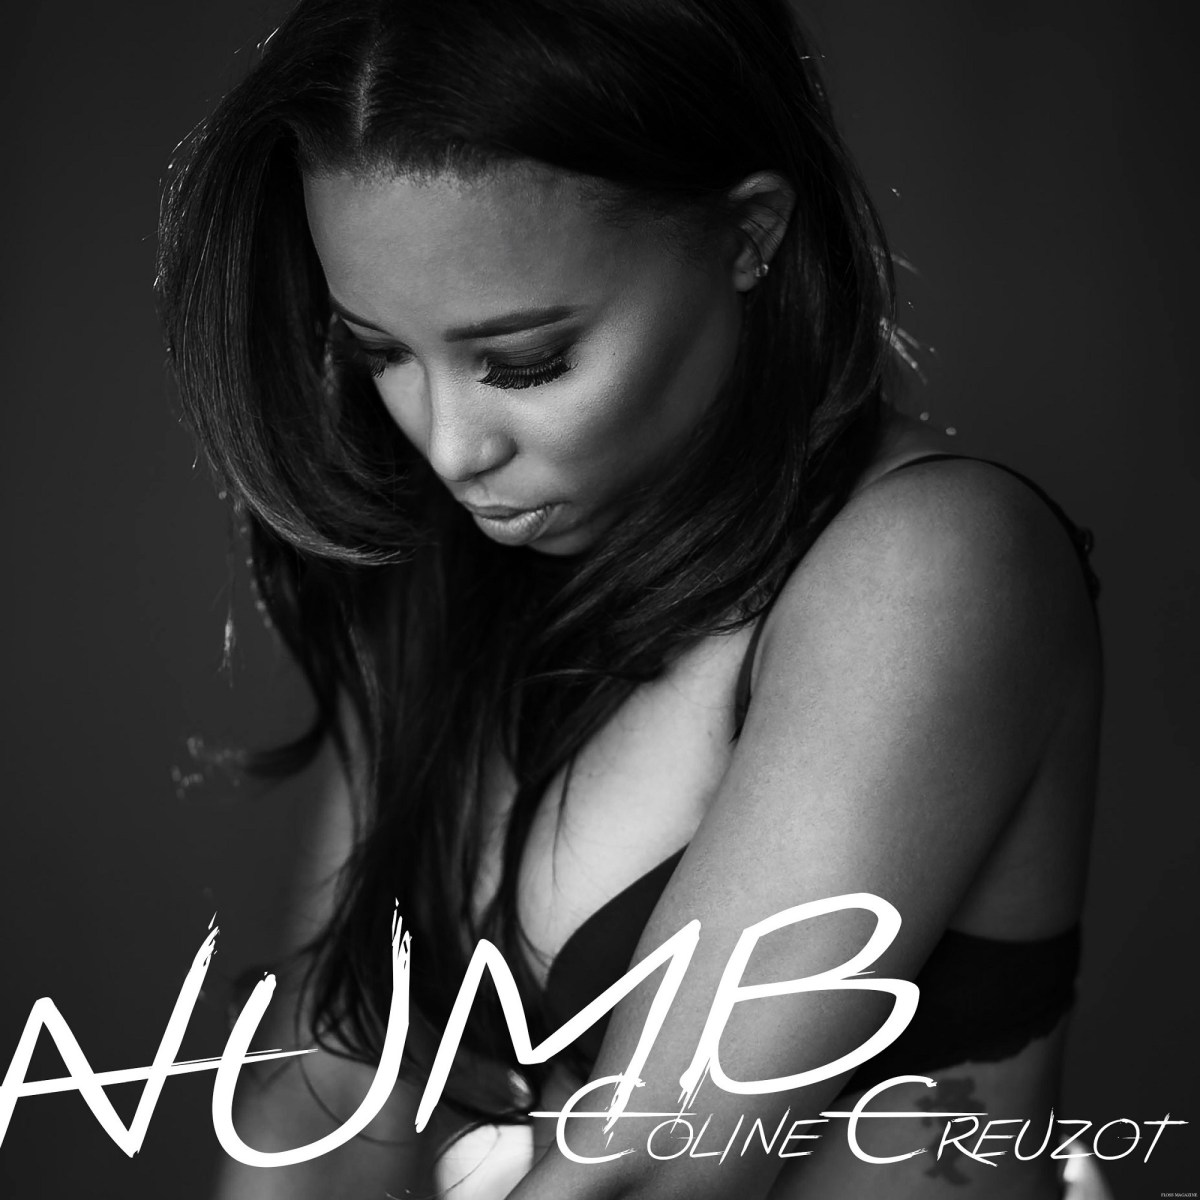 """Coline Creuzot is Set to Release Two New Singles """"Numb"""" and """"Show Me"""""""